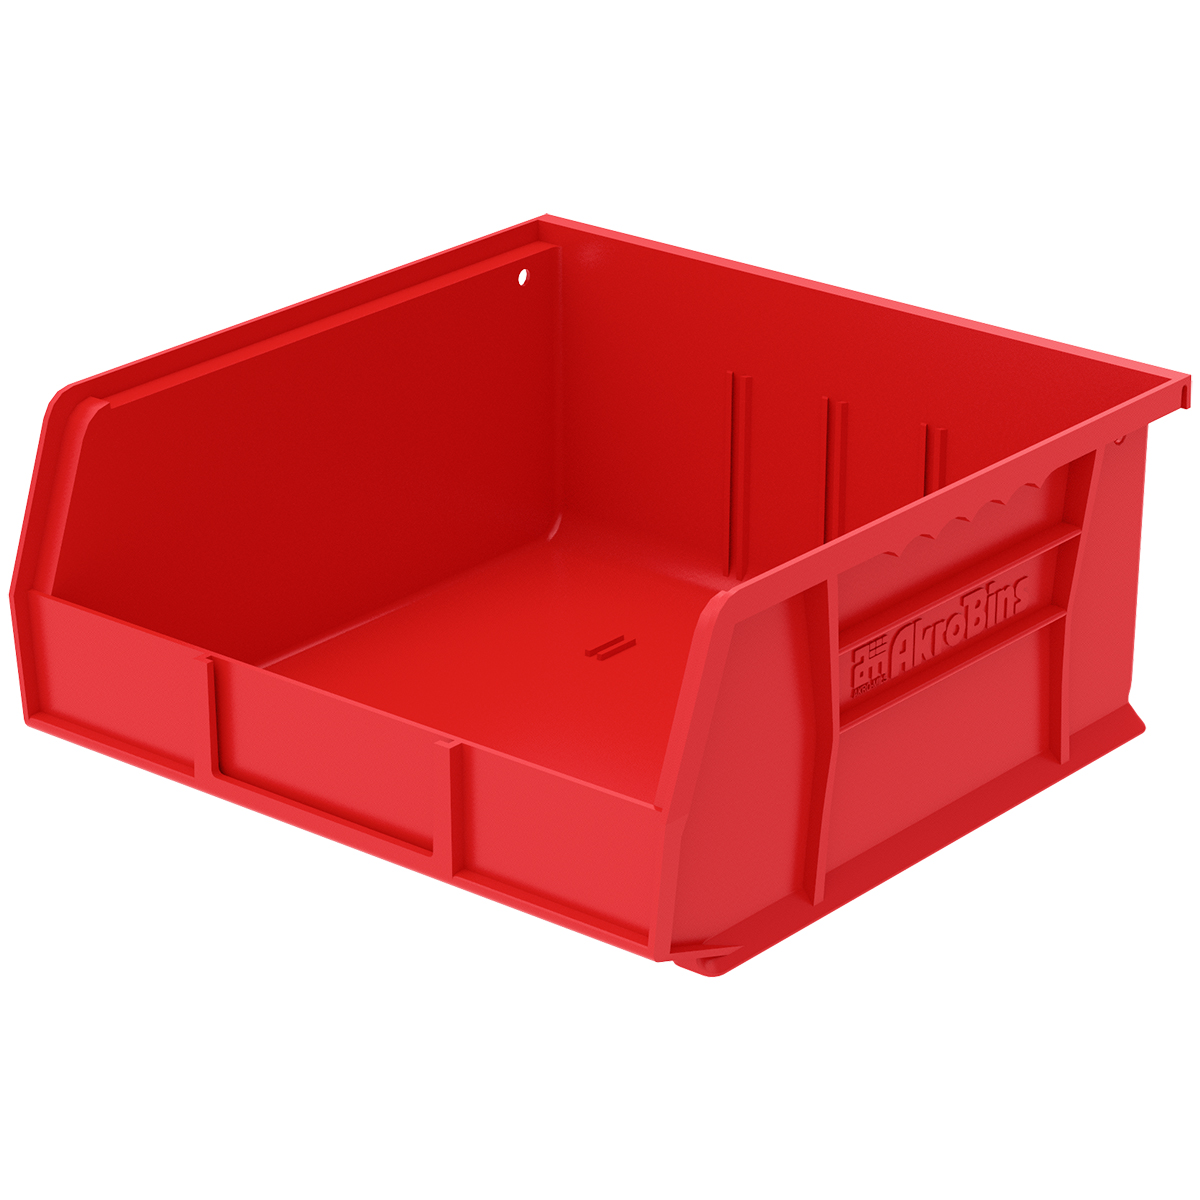 AkroBin 10-7/8 x 11 x 5, Red (30235RED).  This item sold in carton quantities of 6.